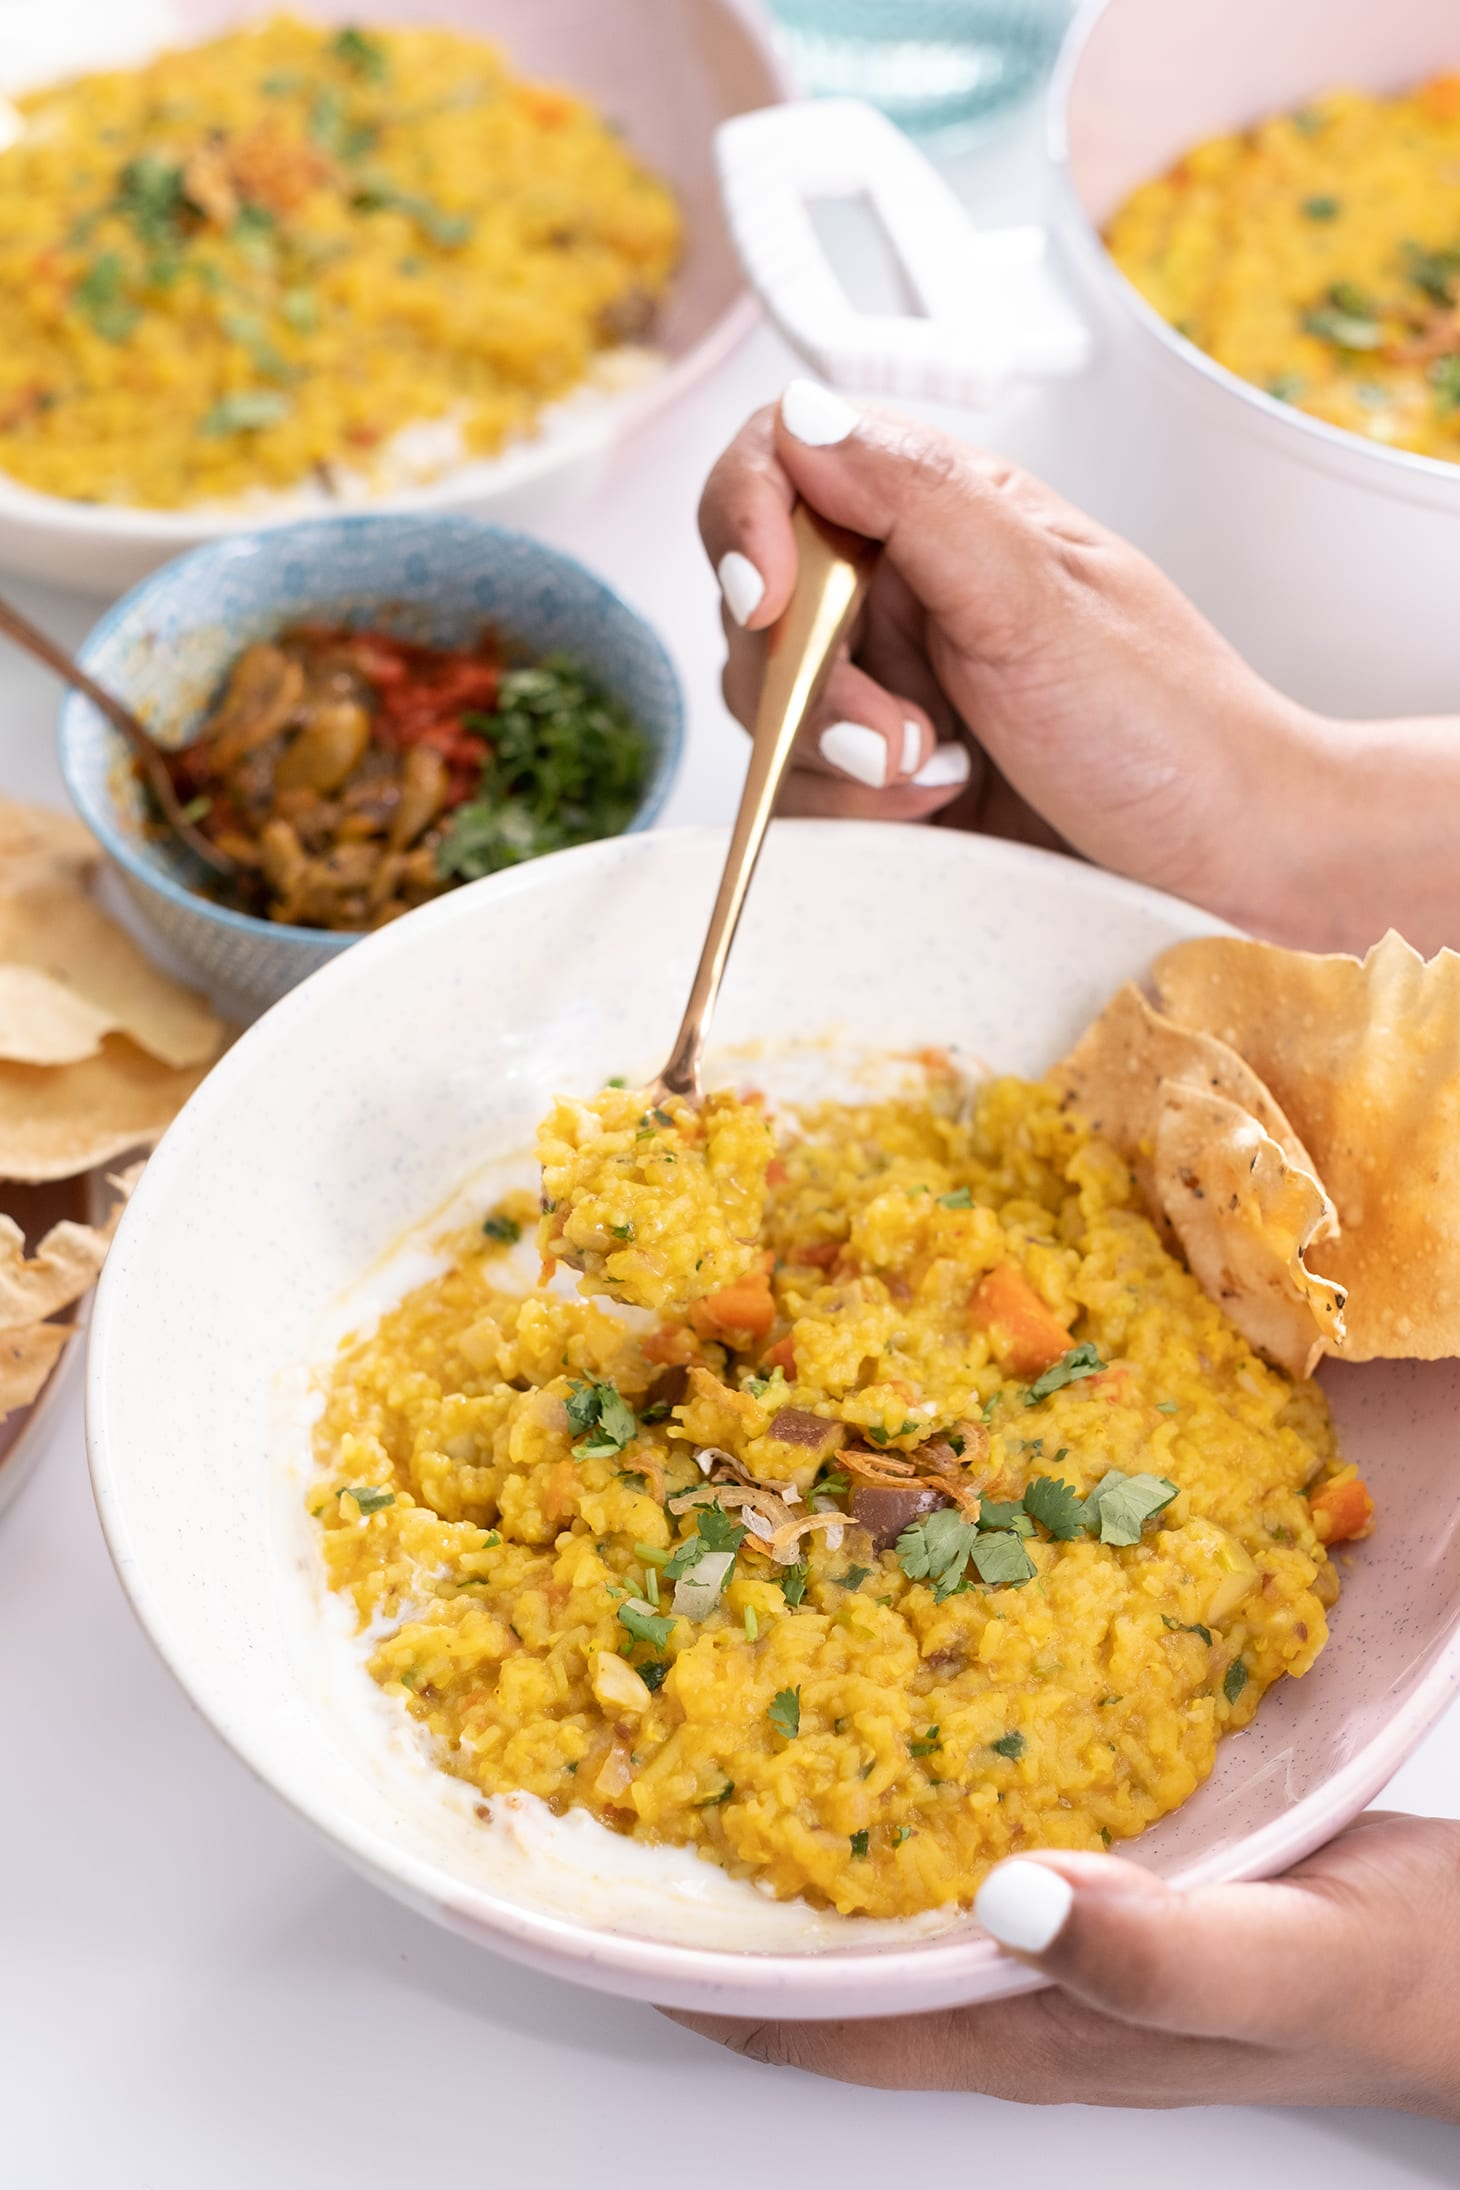 Masala Khichdi With Vegetables Recipe By Pink Chai!